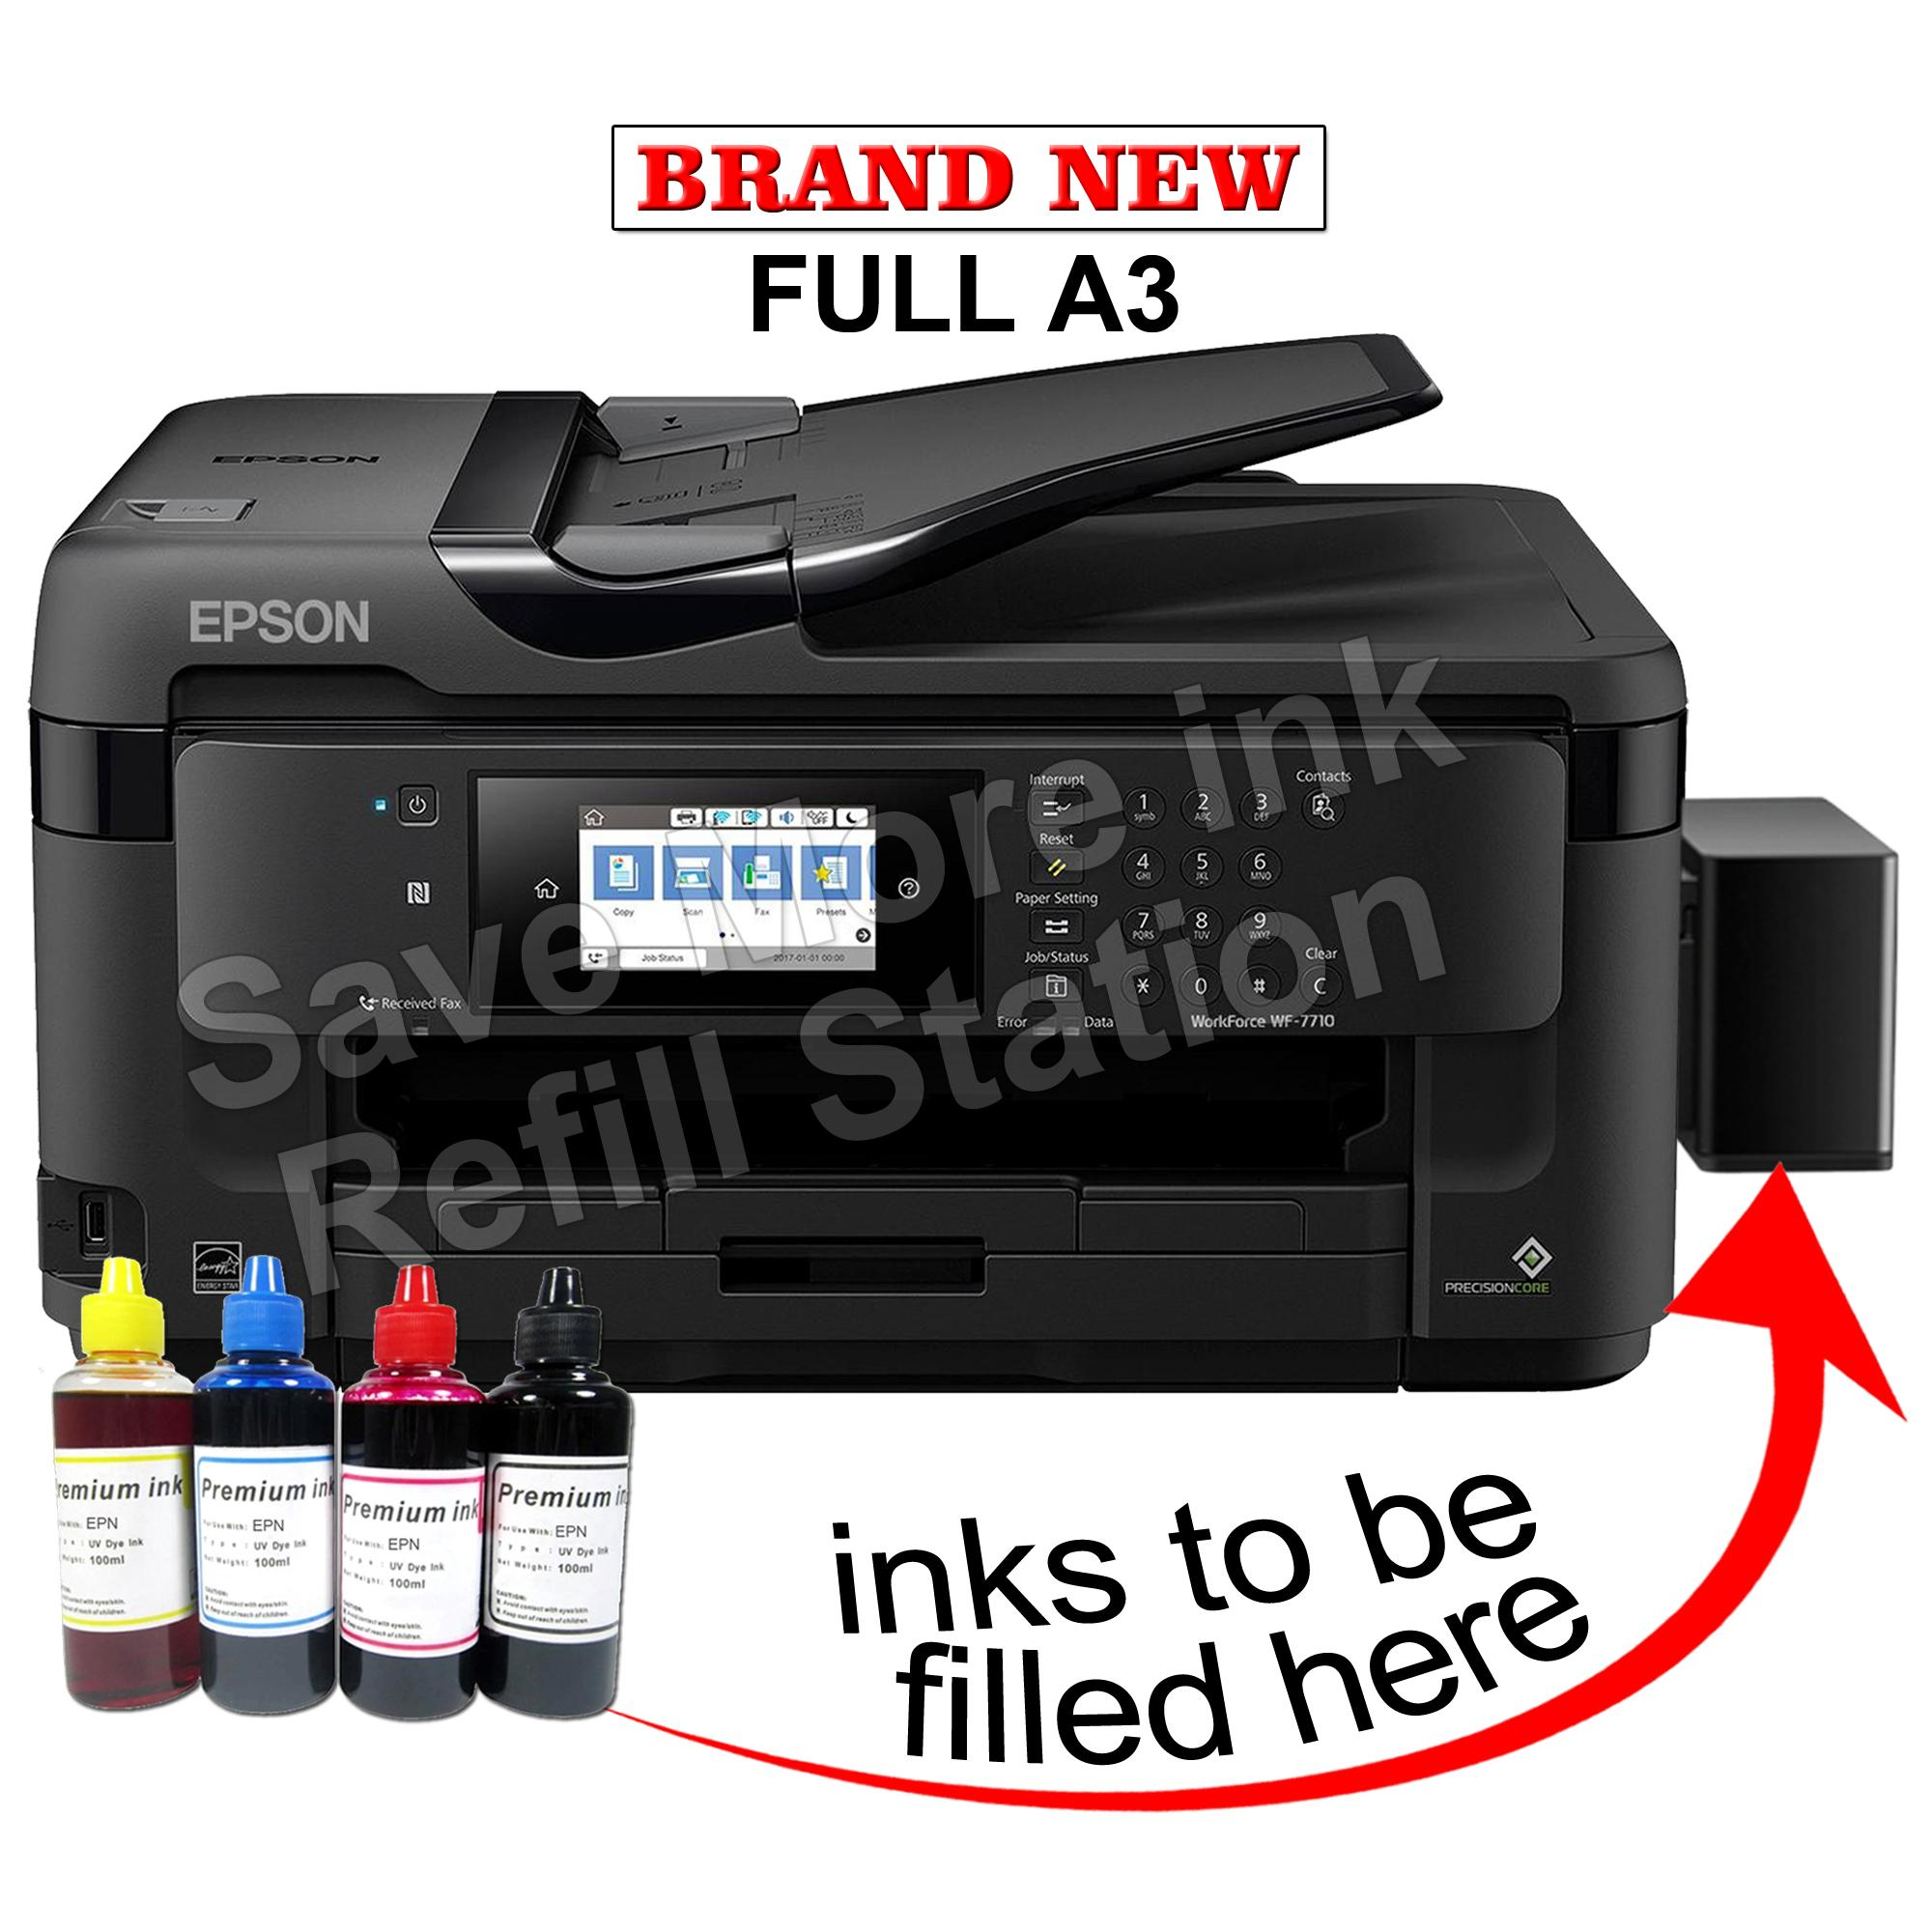 Epson Philippines Price List Printer Scanner Ink L1300 Workforce Wf 7710dwf A3 Wi Fi W Ciss 7710